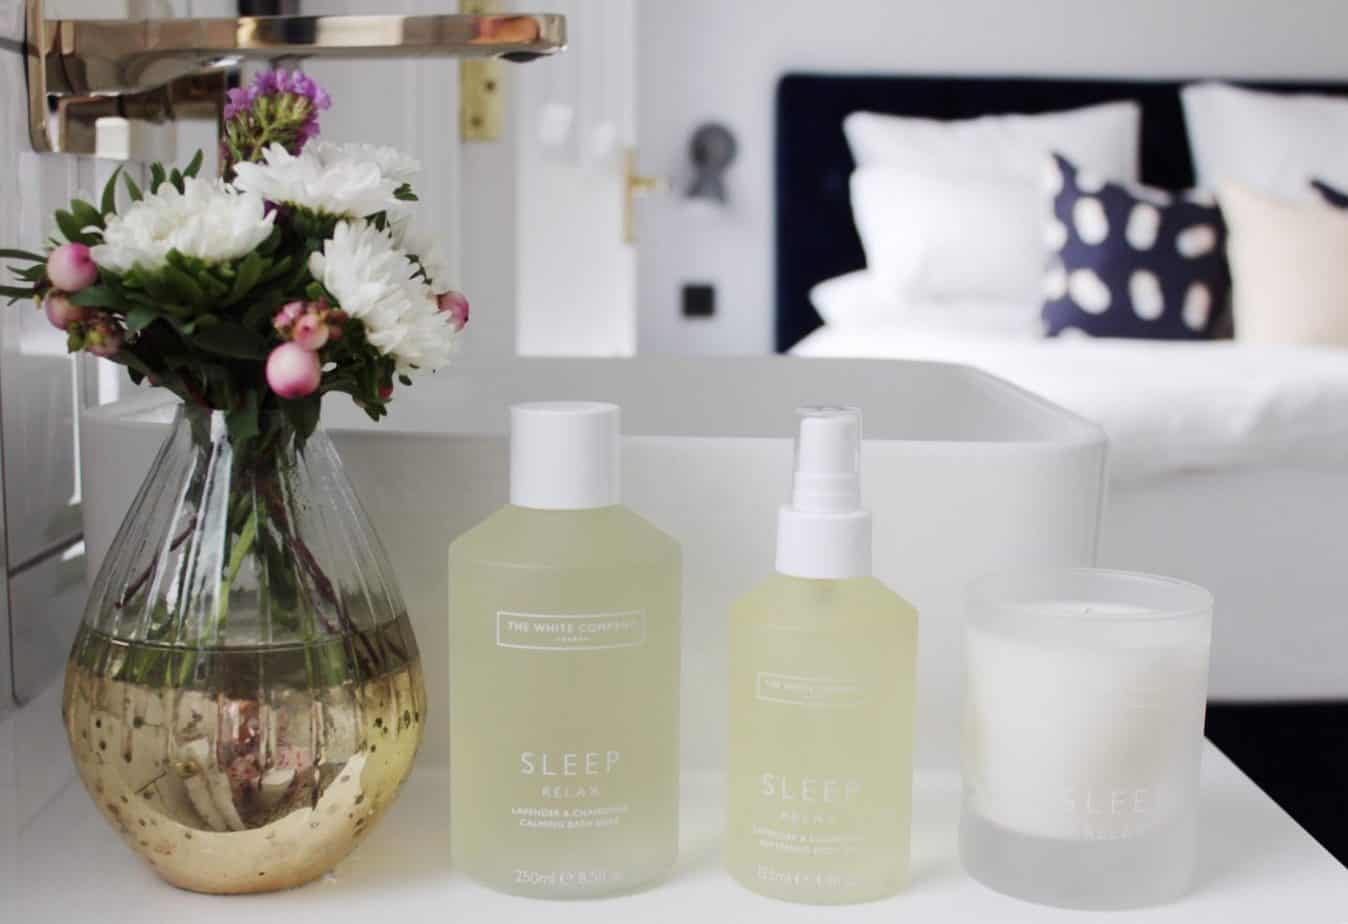 Bedtime rituals with The White Company